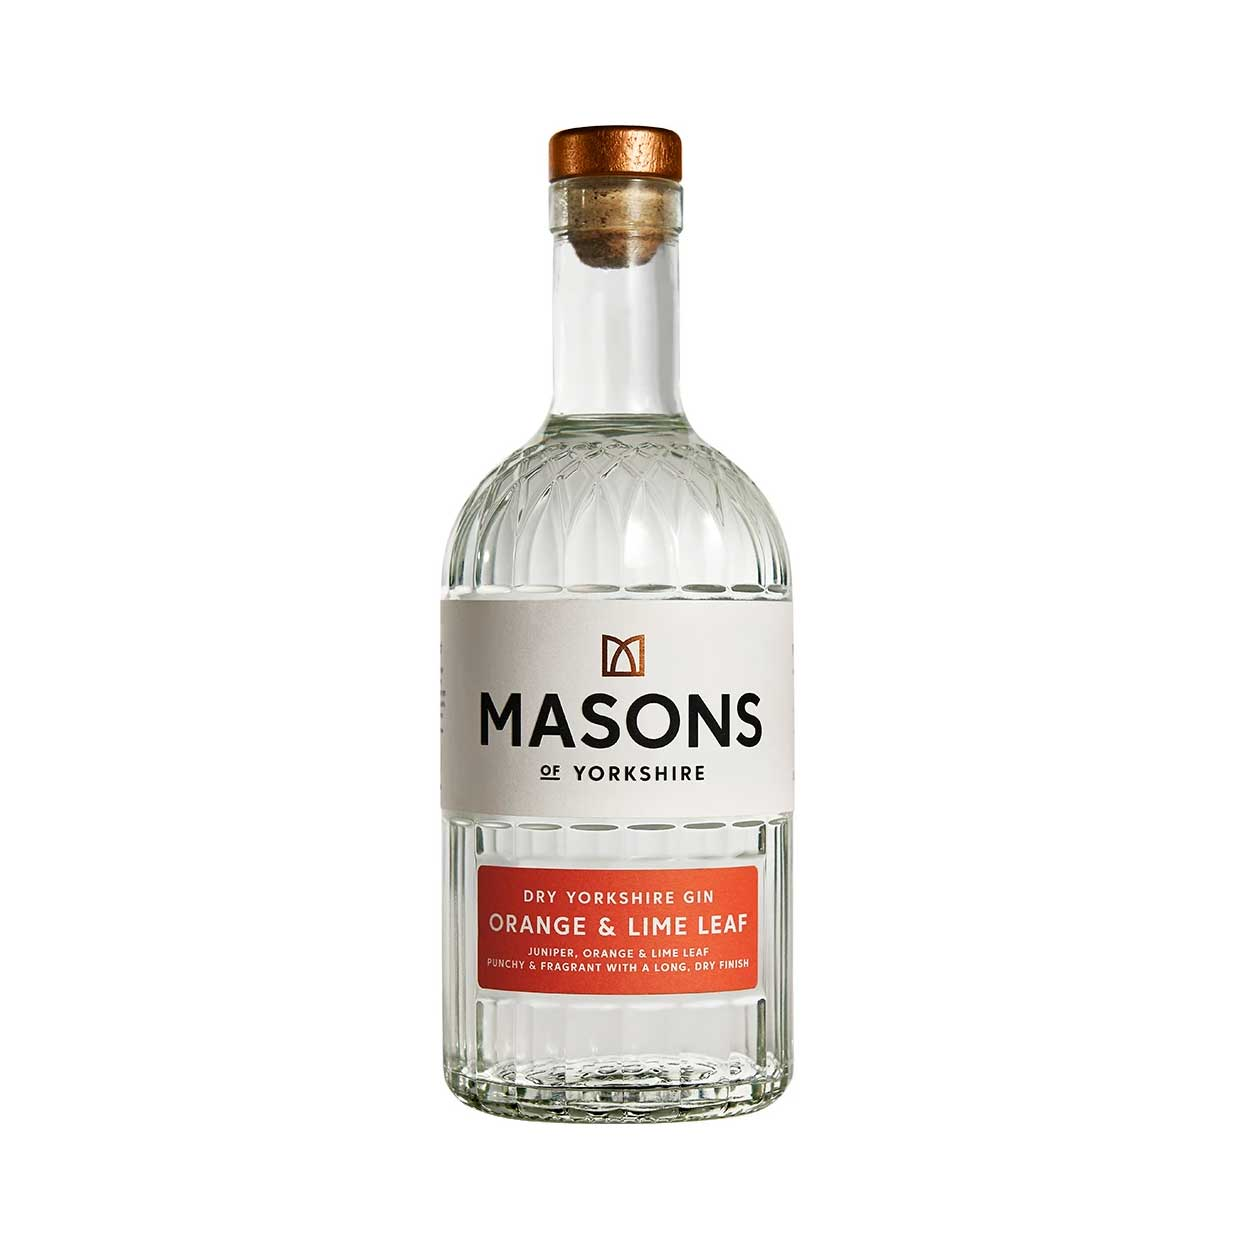 Masons Orange & Lime Leaf Gin